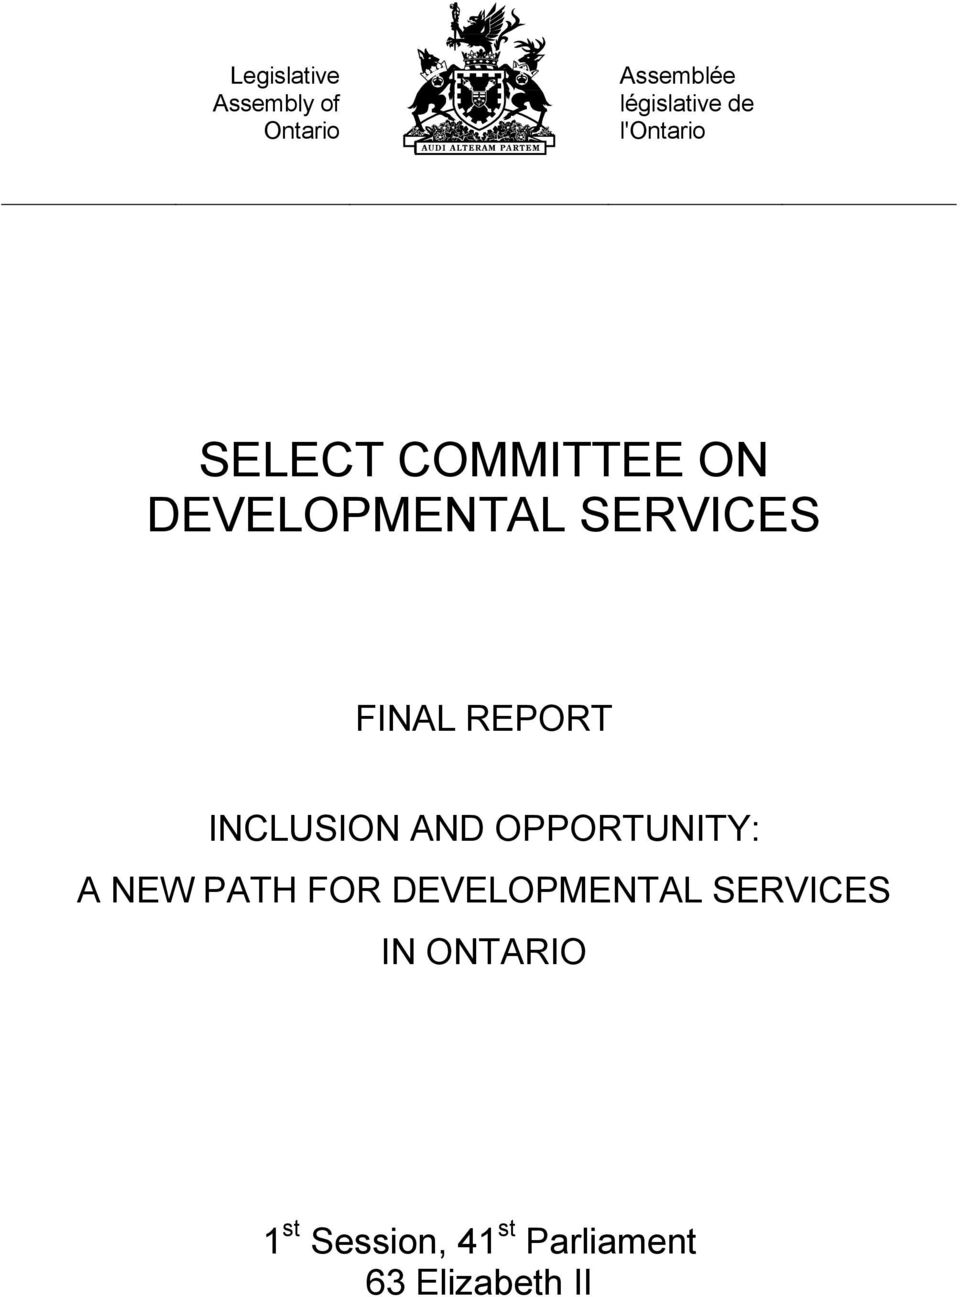 REPORT INCLUSION AND OPPORTUNITY: A NEW PATH FOR